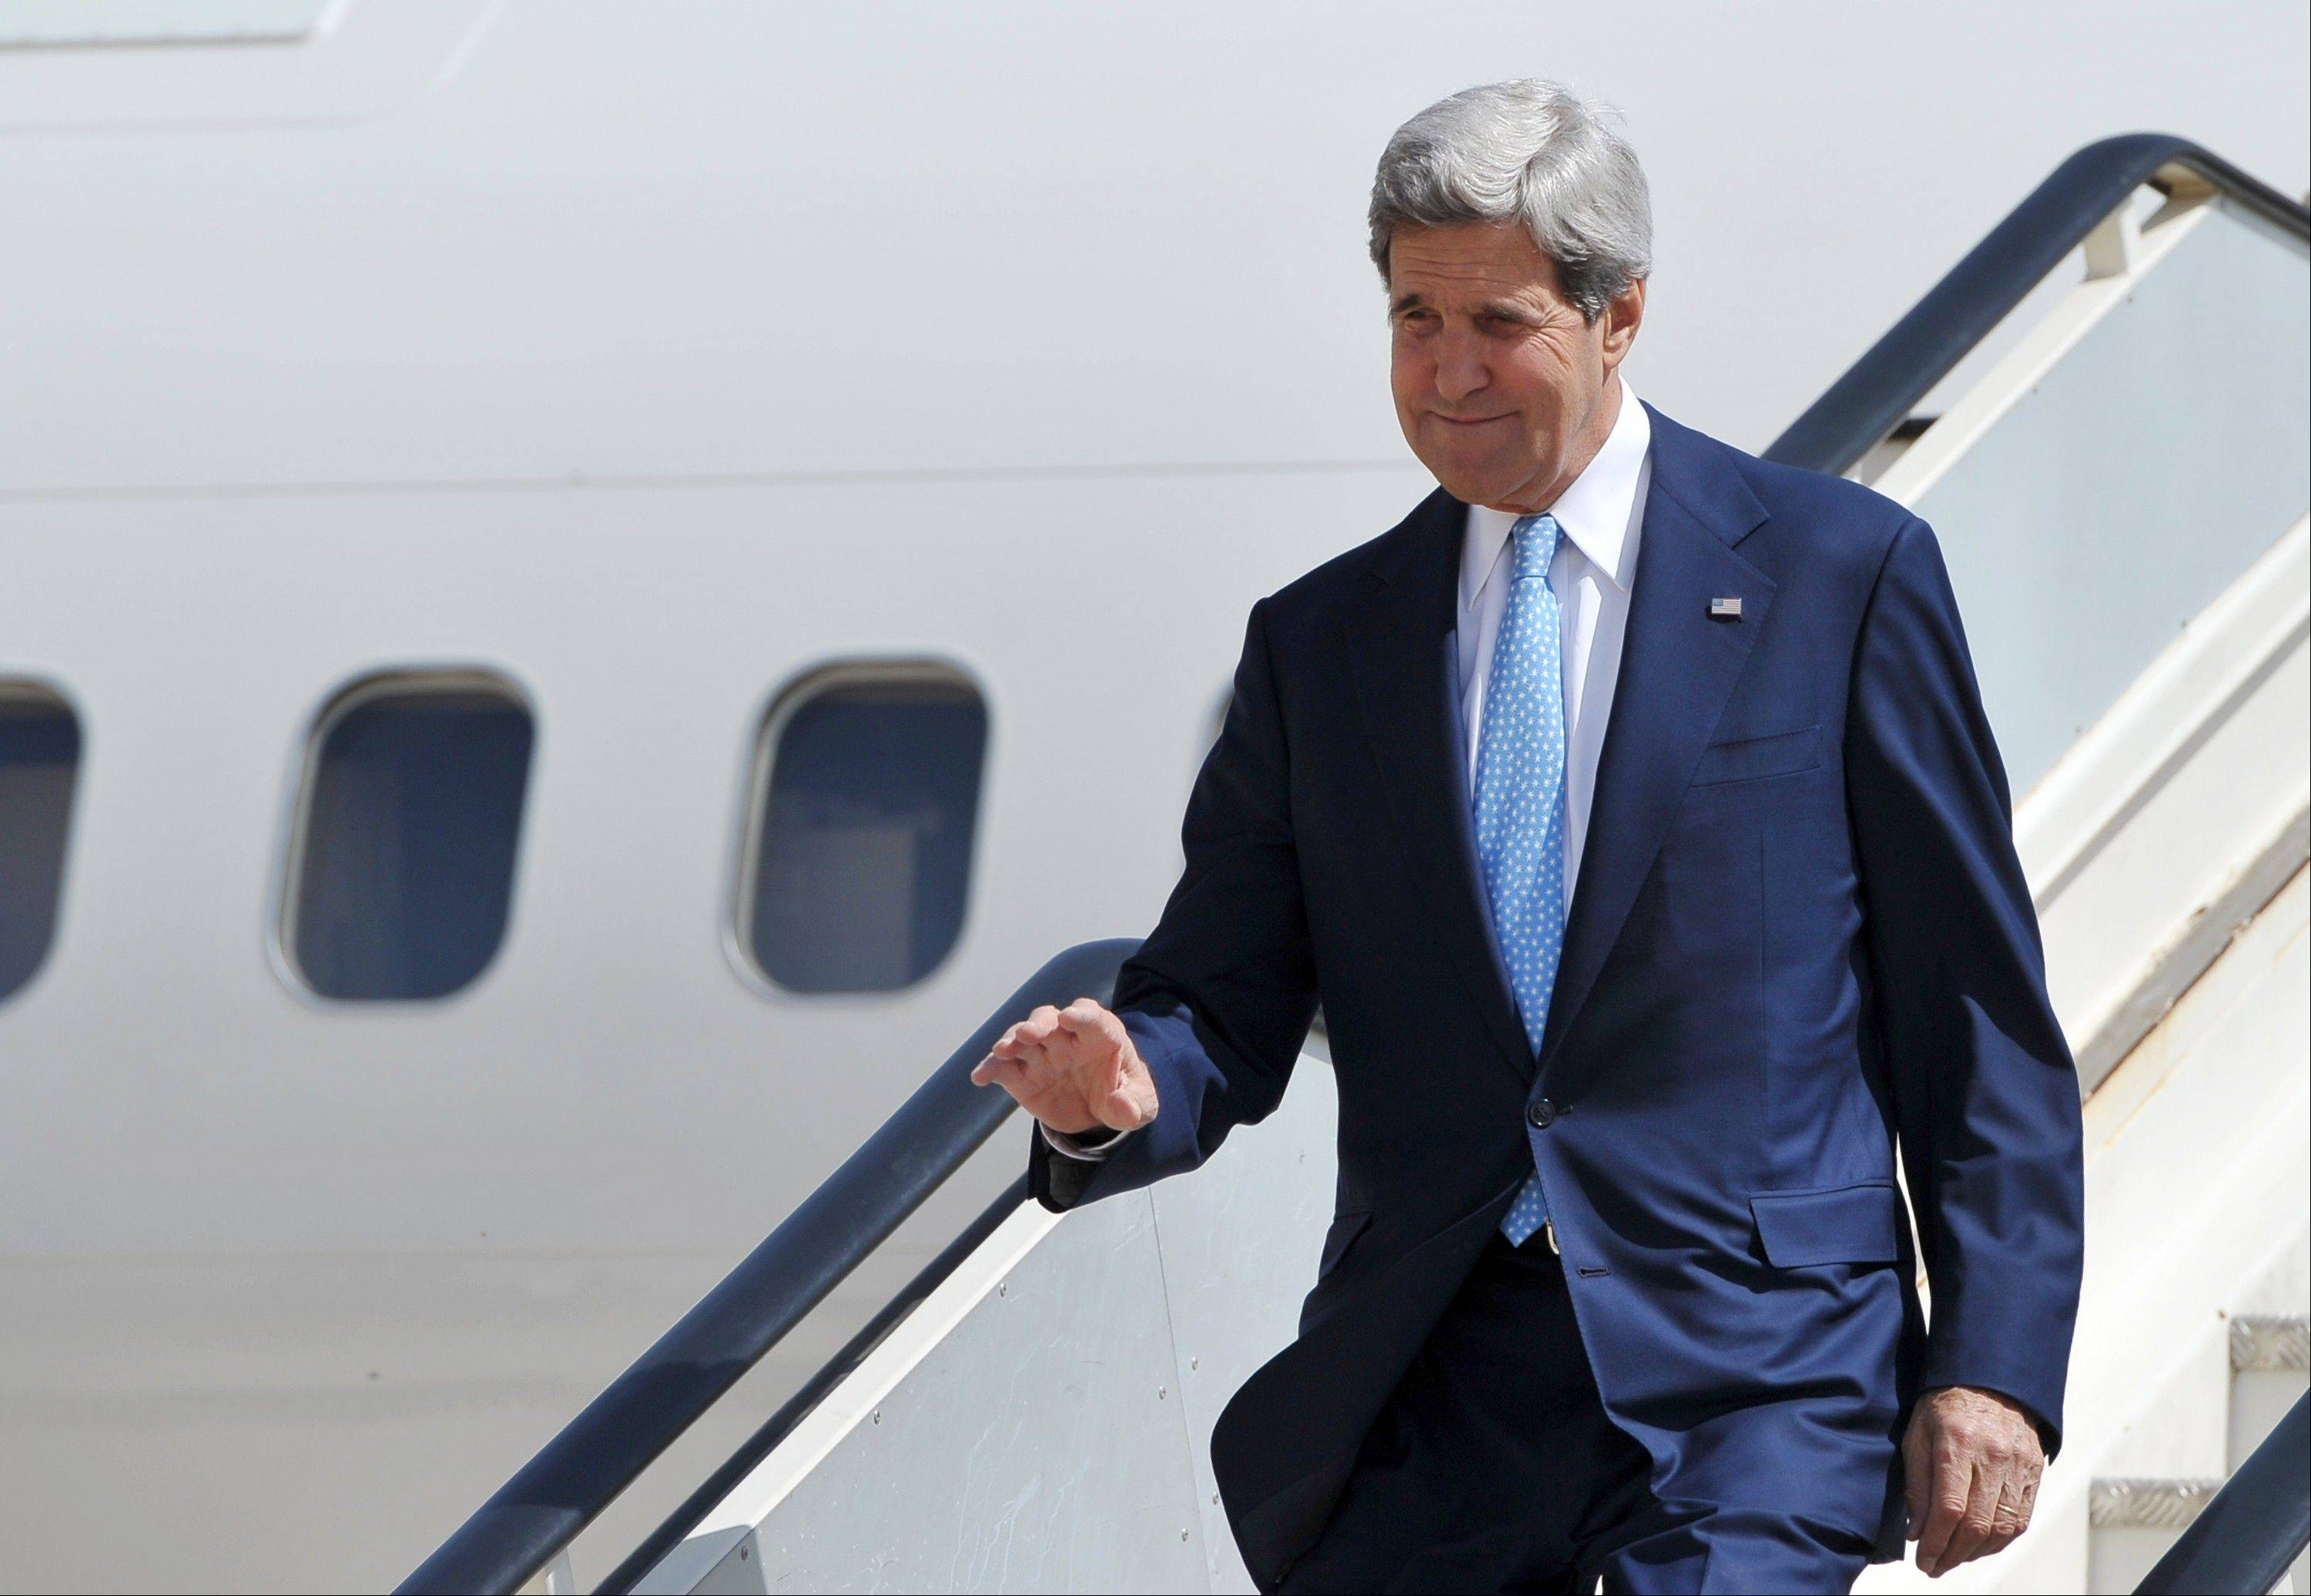 U.S. Secretary of State John Kerry steps off his plane upon his arrival at Queen Alia International Airport in Amman, Jordan on Tuesday, July 16, 2013. Kerry headed to Jordan on his sixth trip to the region as he tries to push Israelis and Palestinians back to peace talks.